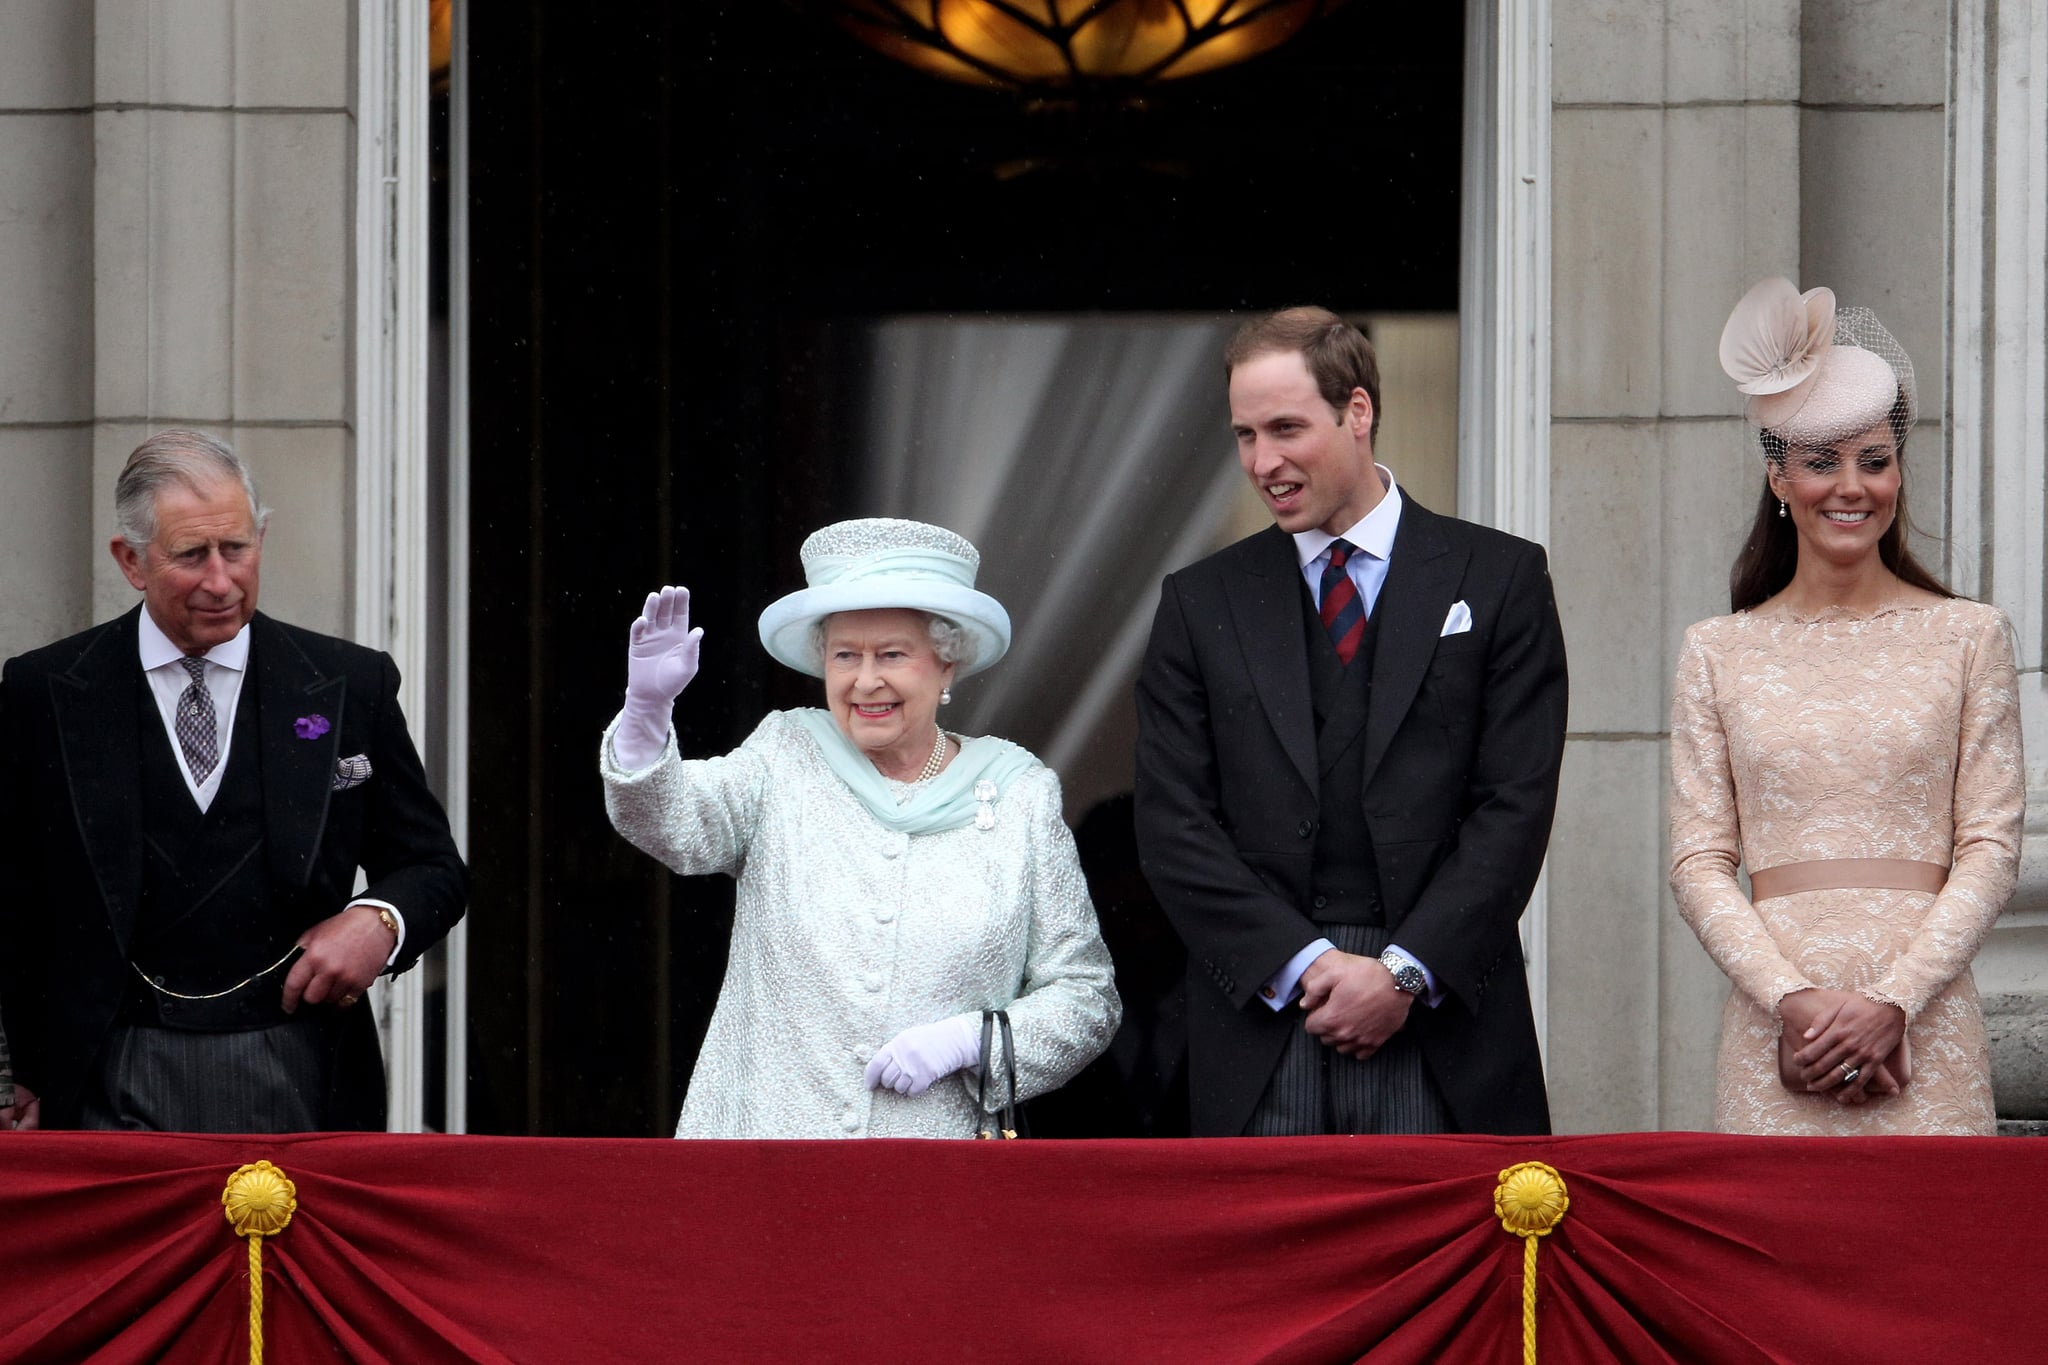 The queen and her family waved to people from the balcony for Queen on balcony